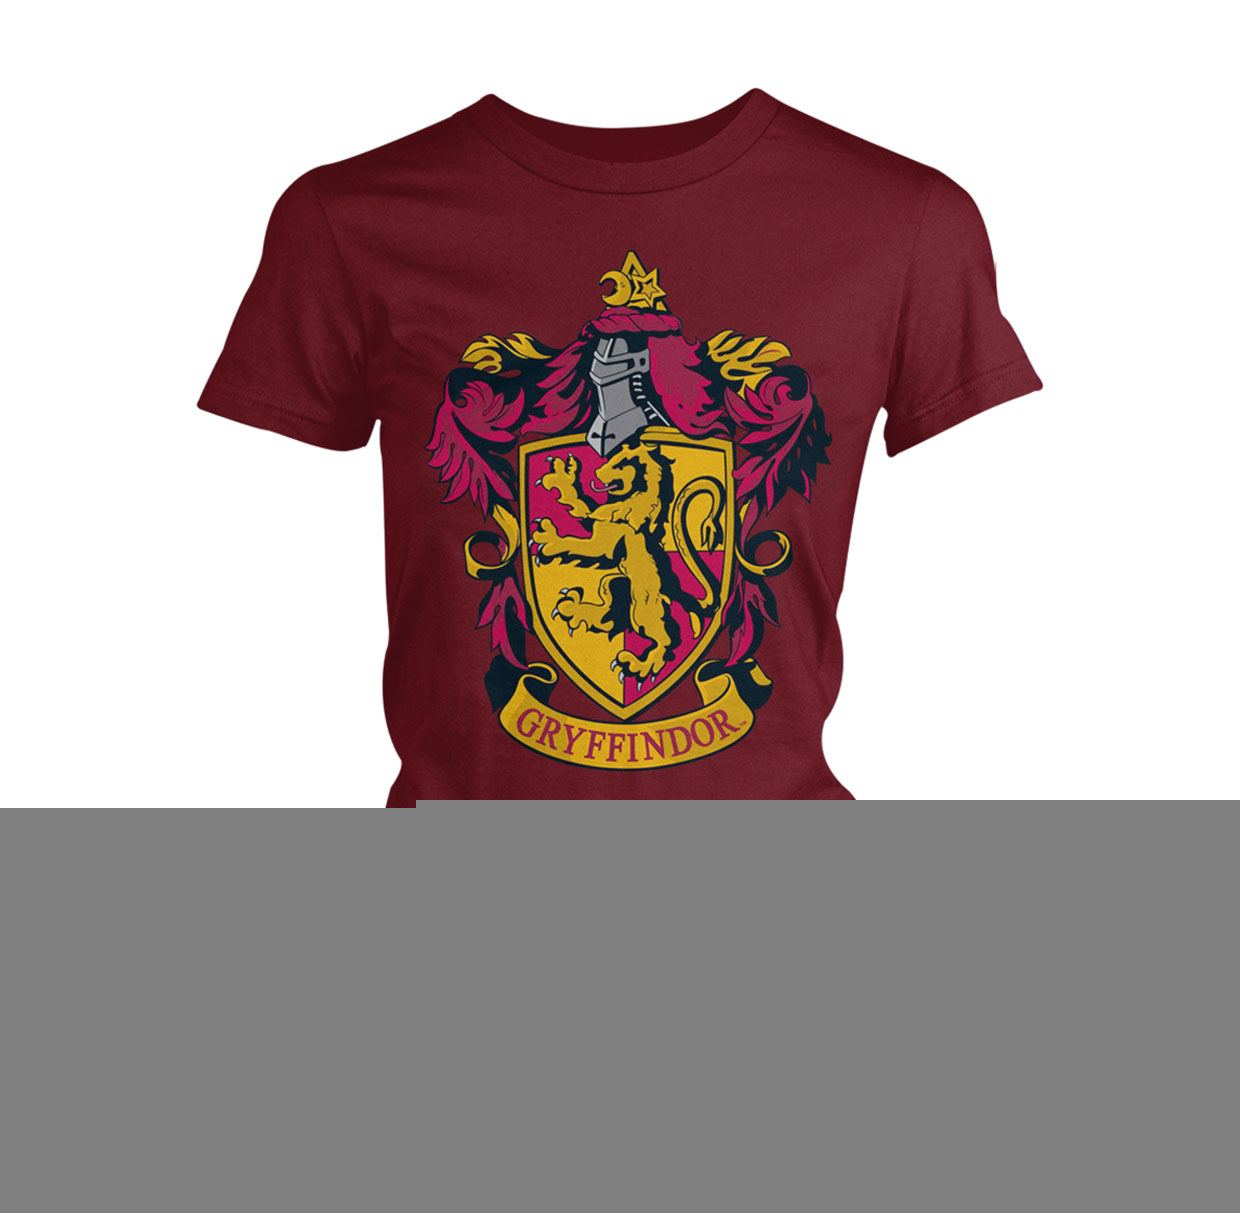 Harry Potter Ladies T-Shirt Gryffindor Size XL